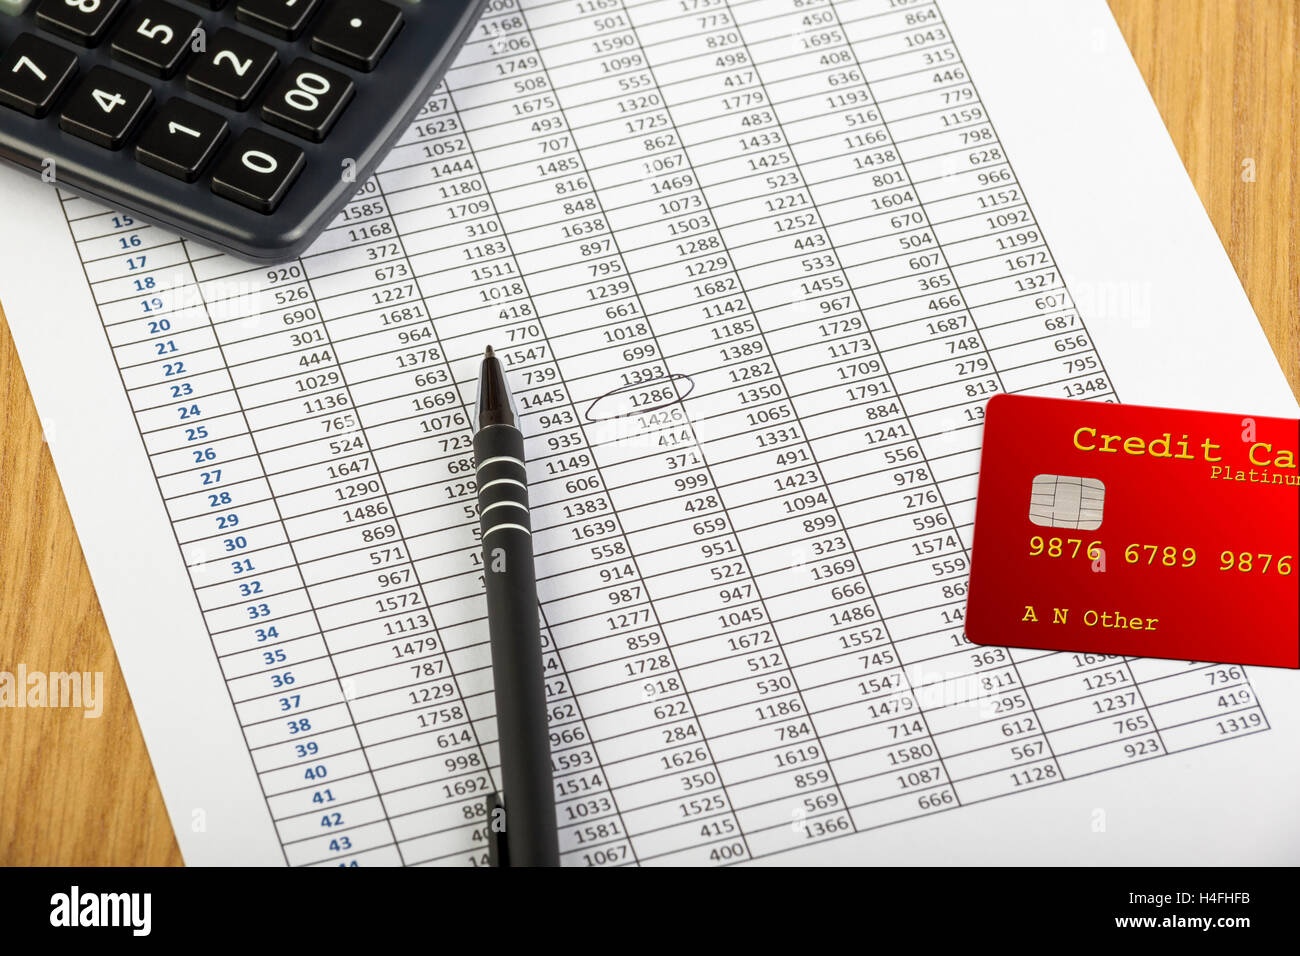 Red credit card laying on a spreadsheet printout with circled entries and the corner of a large button black calculator - Stock Image